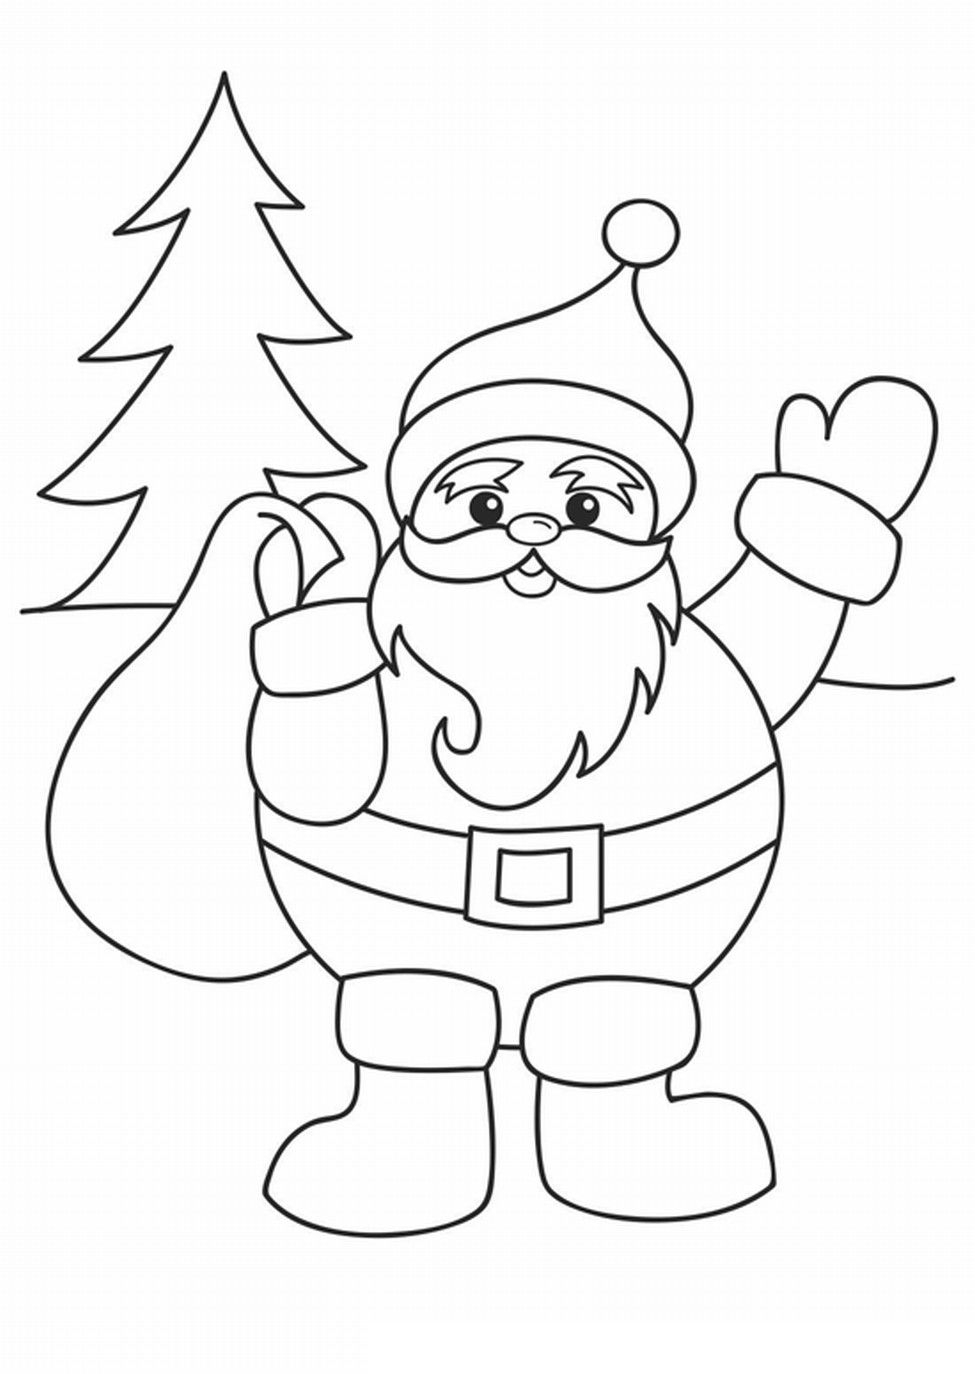 Christmas Coloring Pages For Preschool Preschool Christmas Worksheets Preschool Coloring Pages Christmas Worksheets